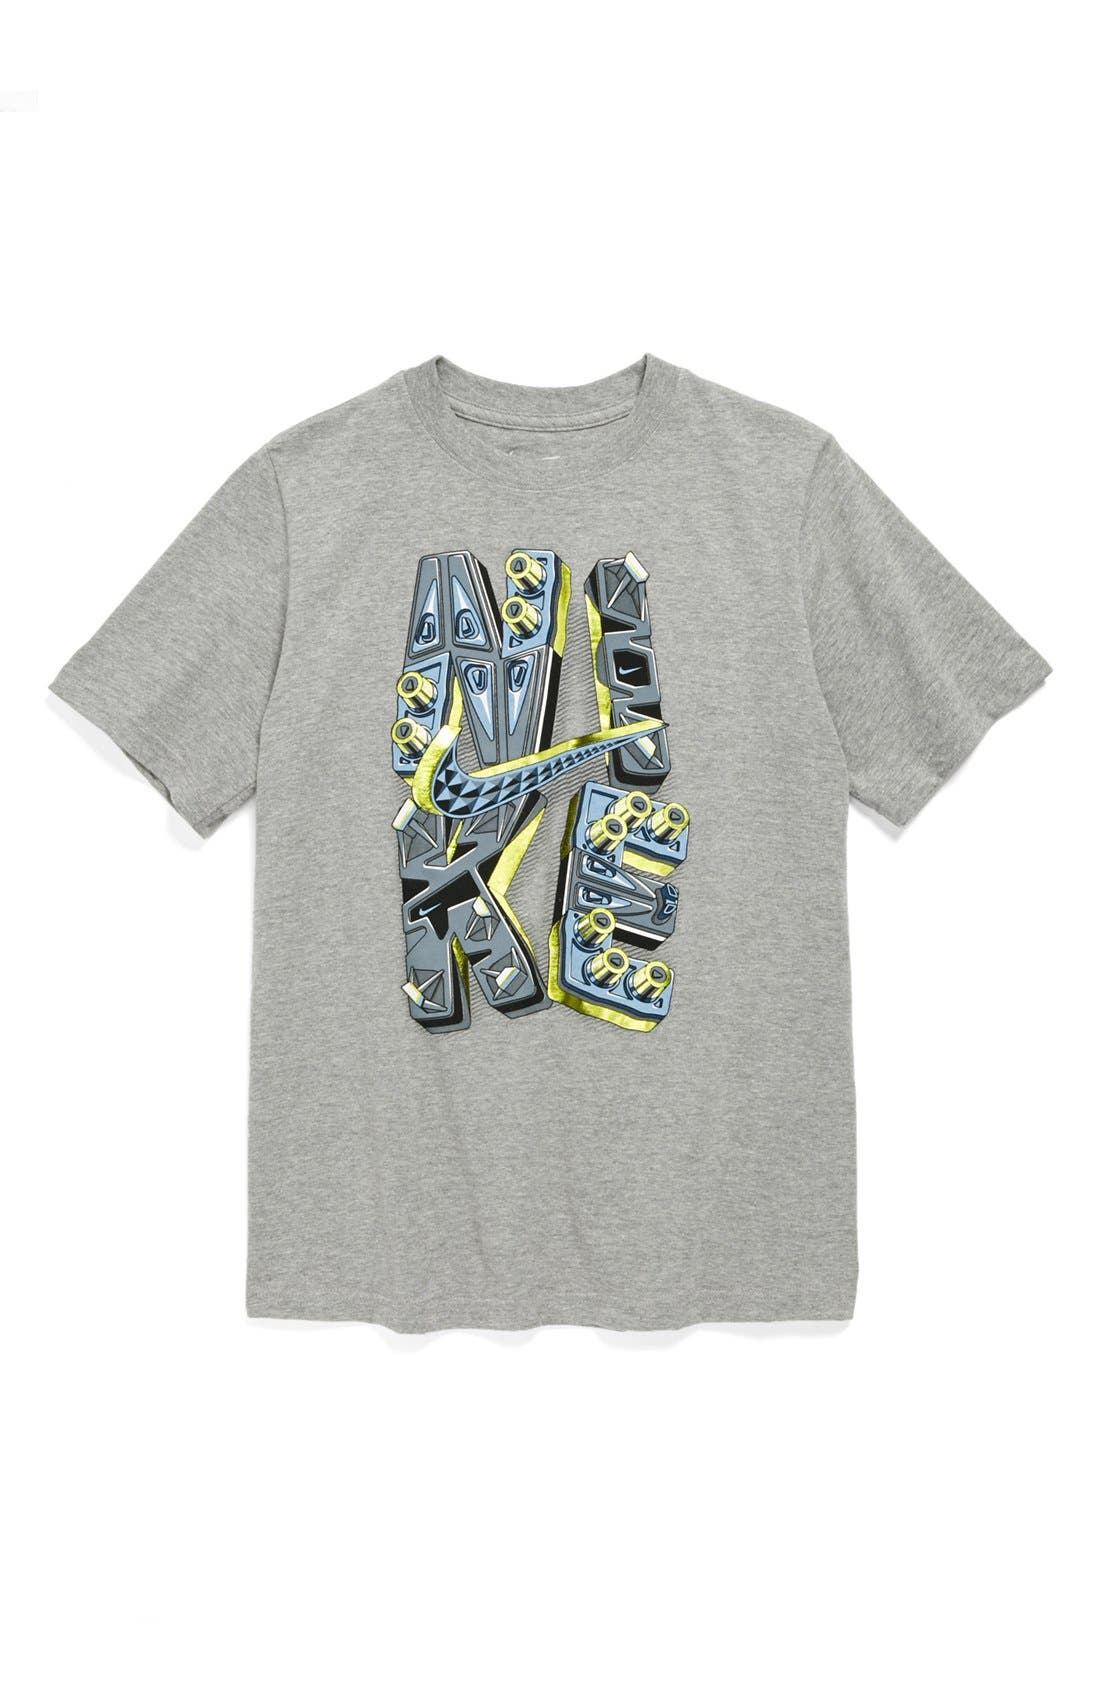 Alternate Image 1 Selected - Nike 'Soles' Cotton Blend T-Shirt (Big Boys)